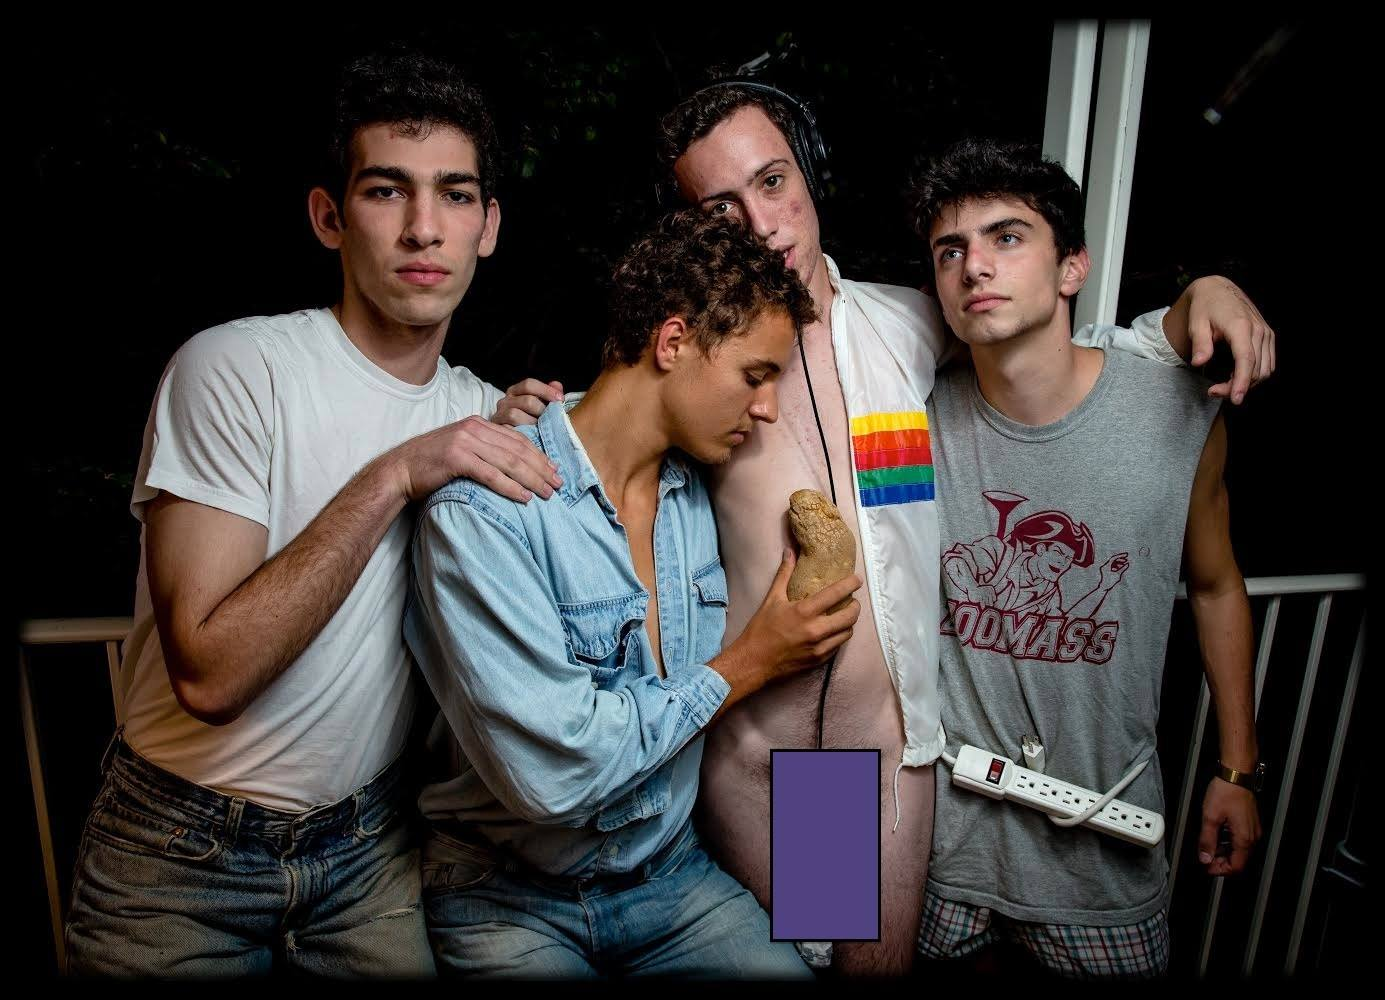 Phatrabbit, from left: Andrew, Will,  spud ,  Josh, and Eli. Photo by Jack Gorlin